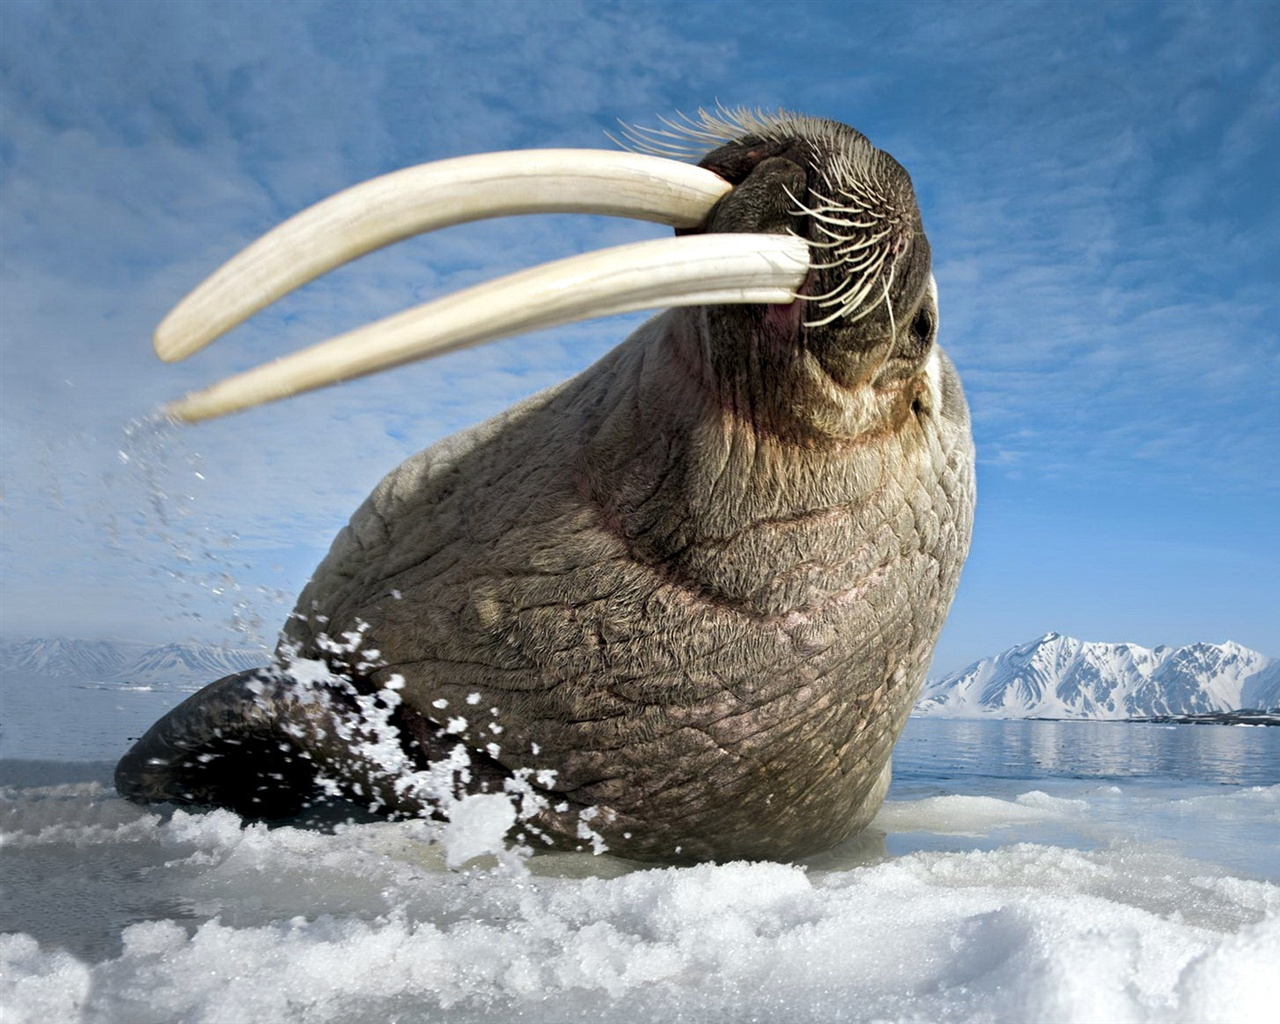 Arctic Walrus Pictures to Pin on Pinterest - PinsDaddy